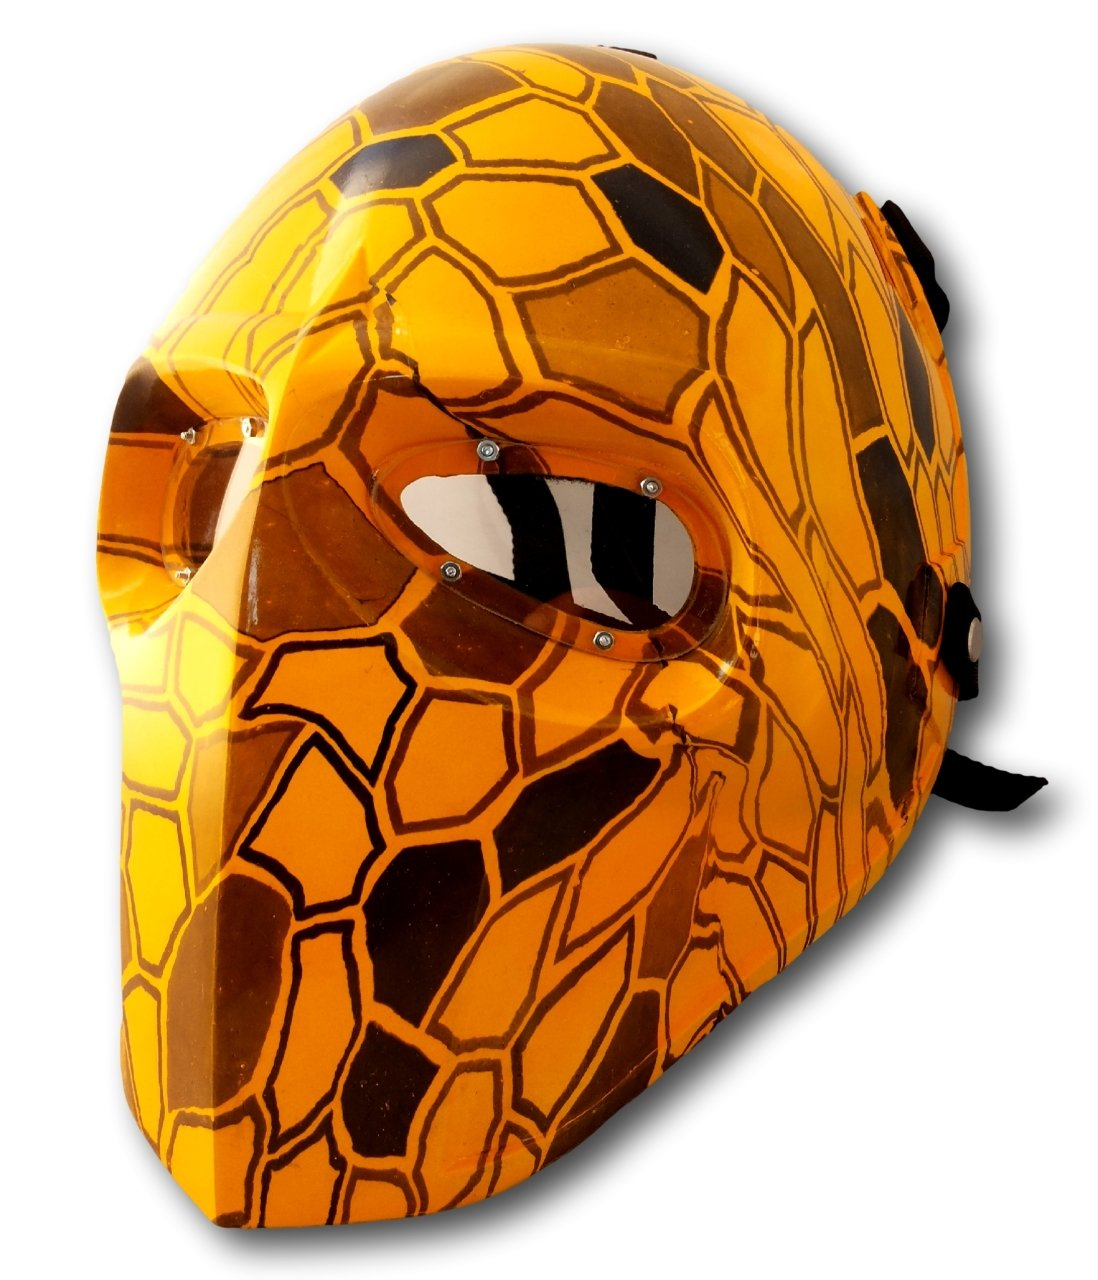 Invader King TM Yellow Dimention Camouflage Army of Two Airsoft Mask Protective Gear Outdoor Sport Fancy Party Ghost Masks Bb Gun protective outdoor war game military skull half face shield mask black